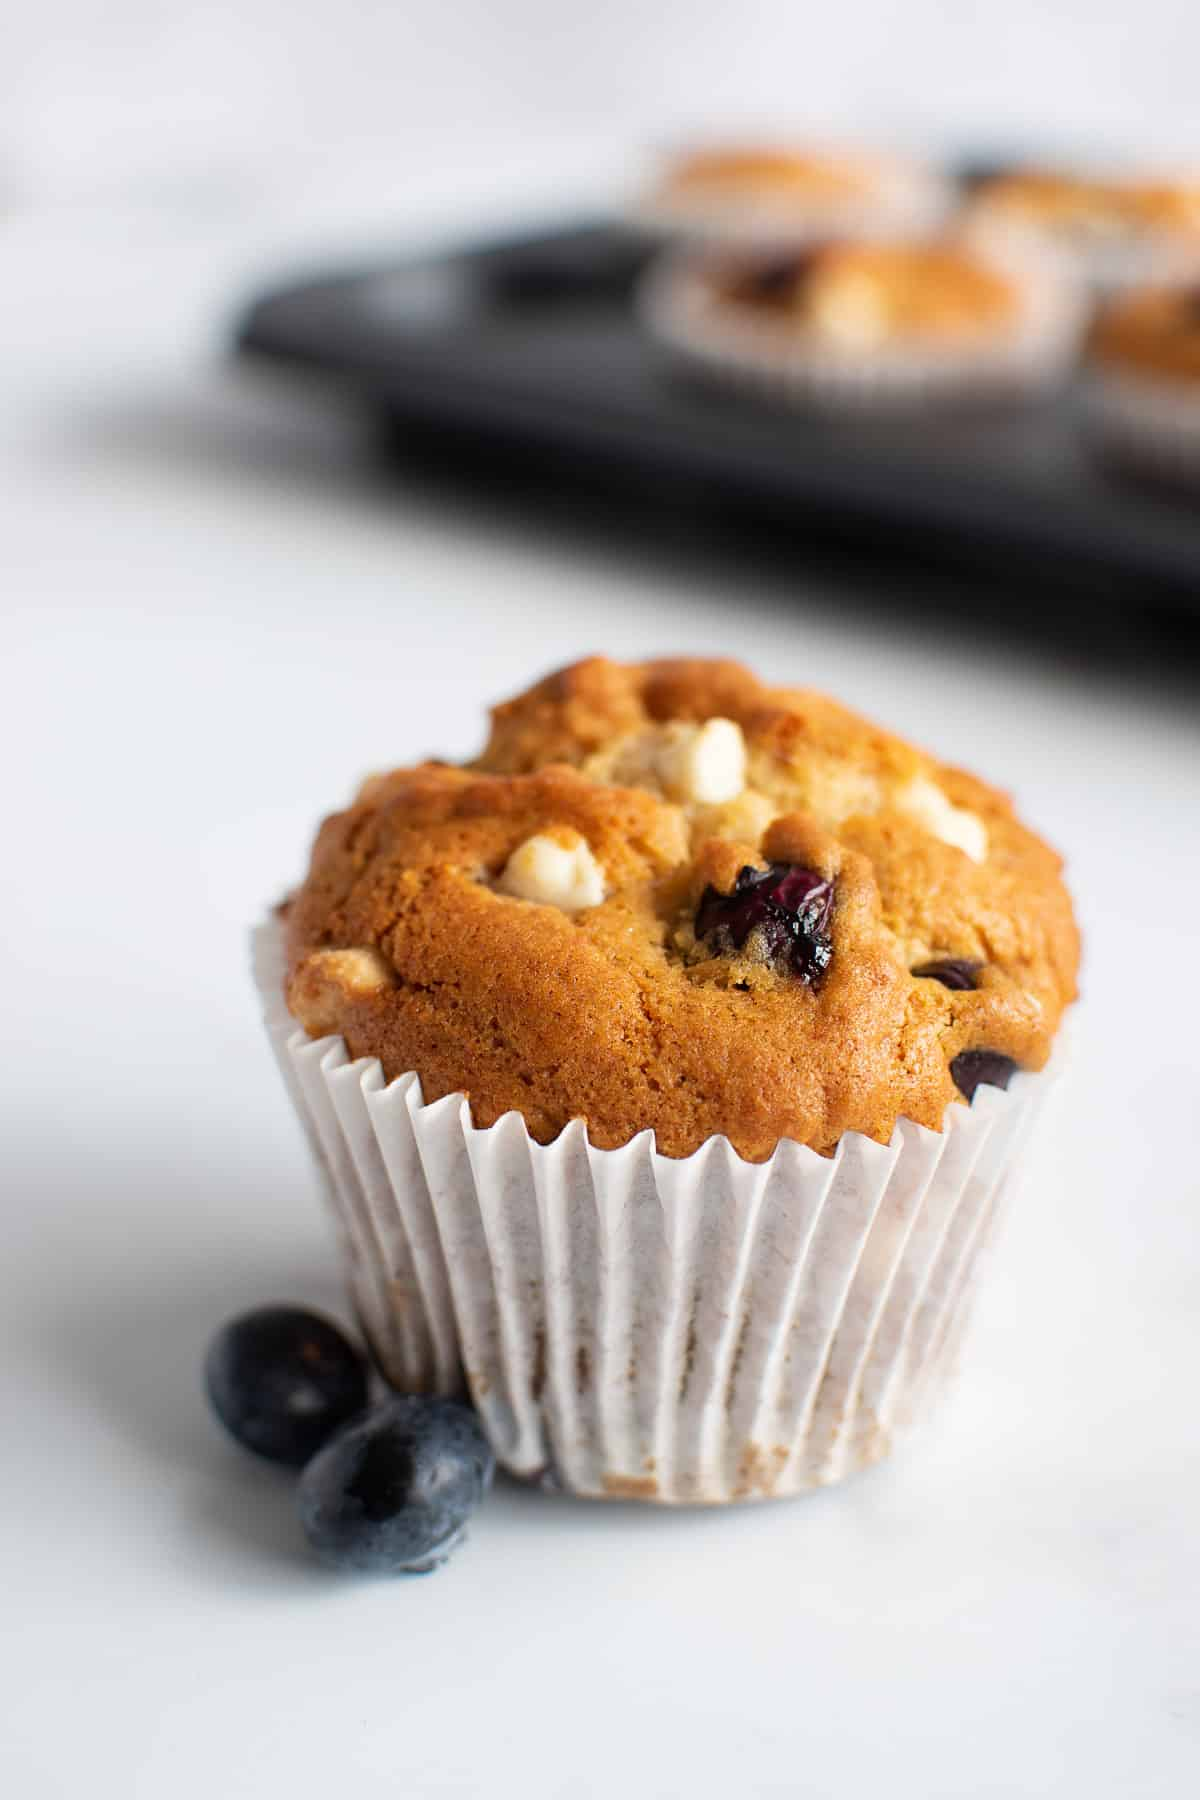 Close up of a muffin with white chocolate chips and blueberries.